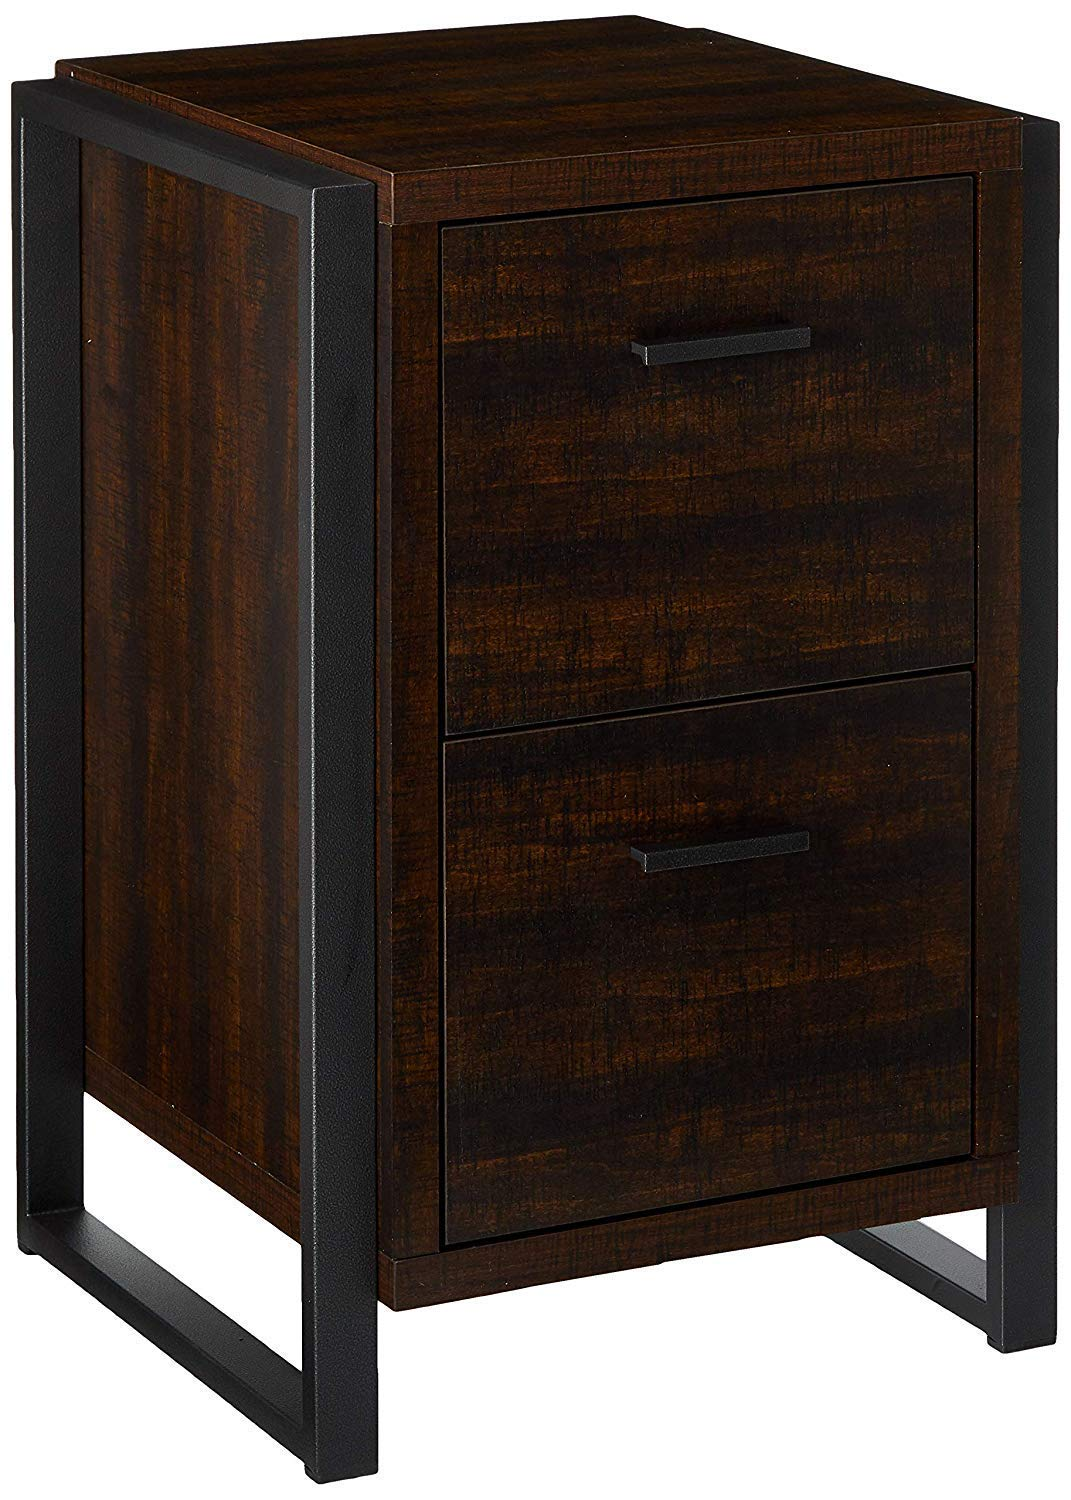 Offex Home Office 2 Drawer Vertical File Storage Cabinet - Dark Chocolate , 19.7''W x 19.7''D x 30''H - YD-OF-5134